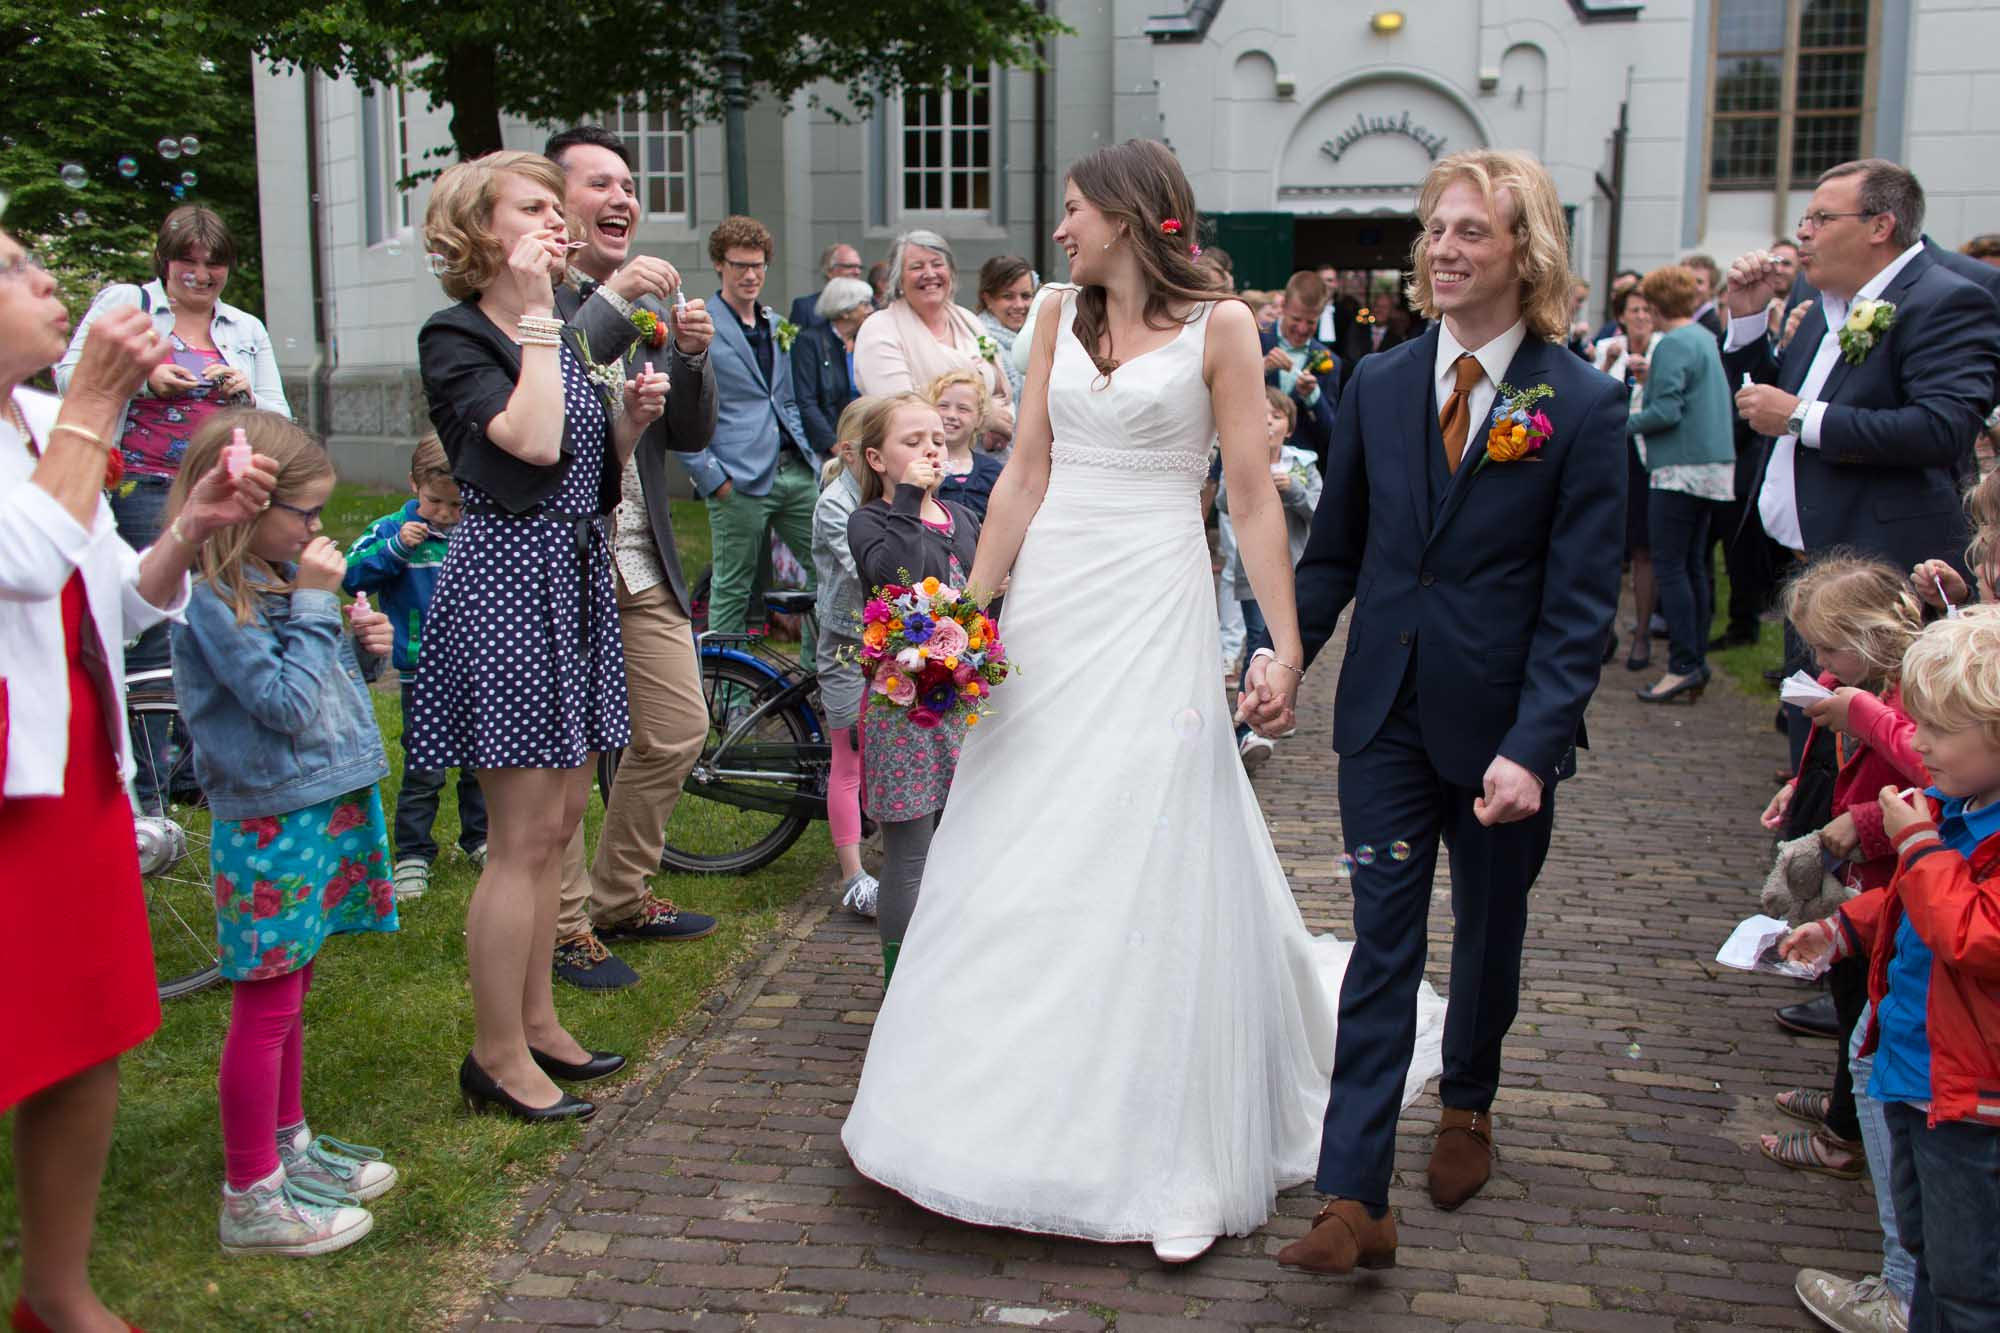 011 Imagine Trouwfotografie Baarn